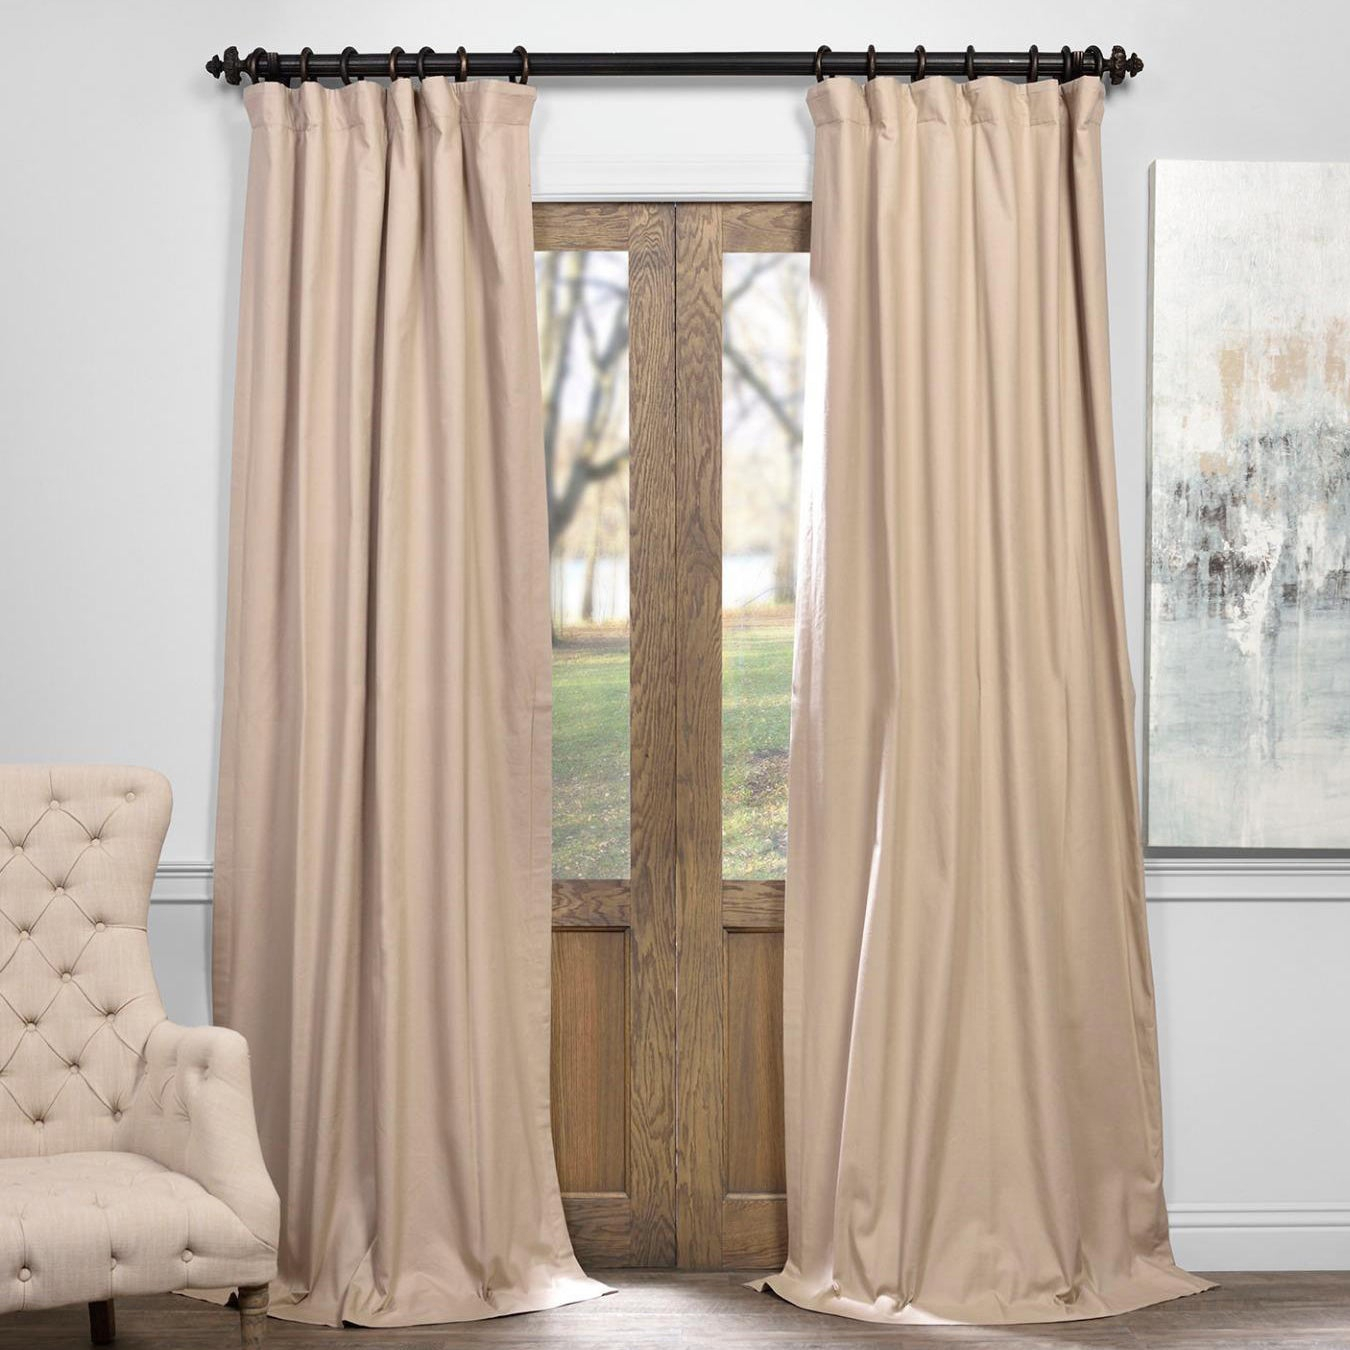 Shop Exclusive Fabrics Solid Cotton True Blackout Curtain Within Solid Cotton True Blackout Curtain Panels (View 2 of 30)